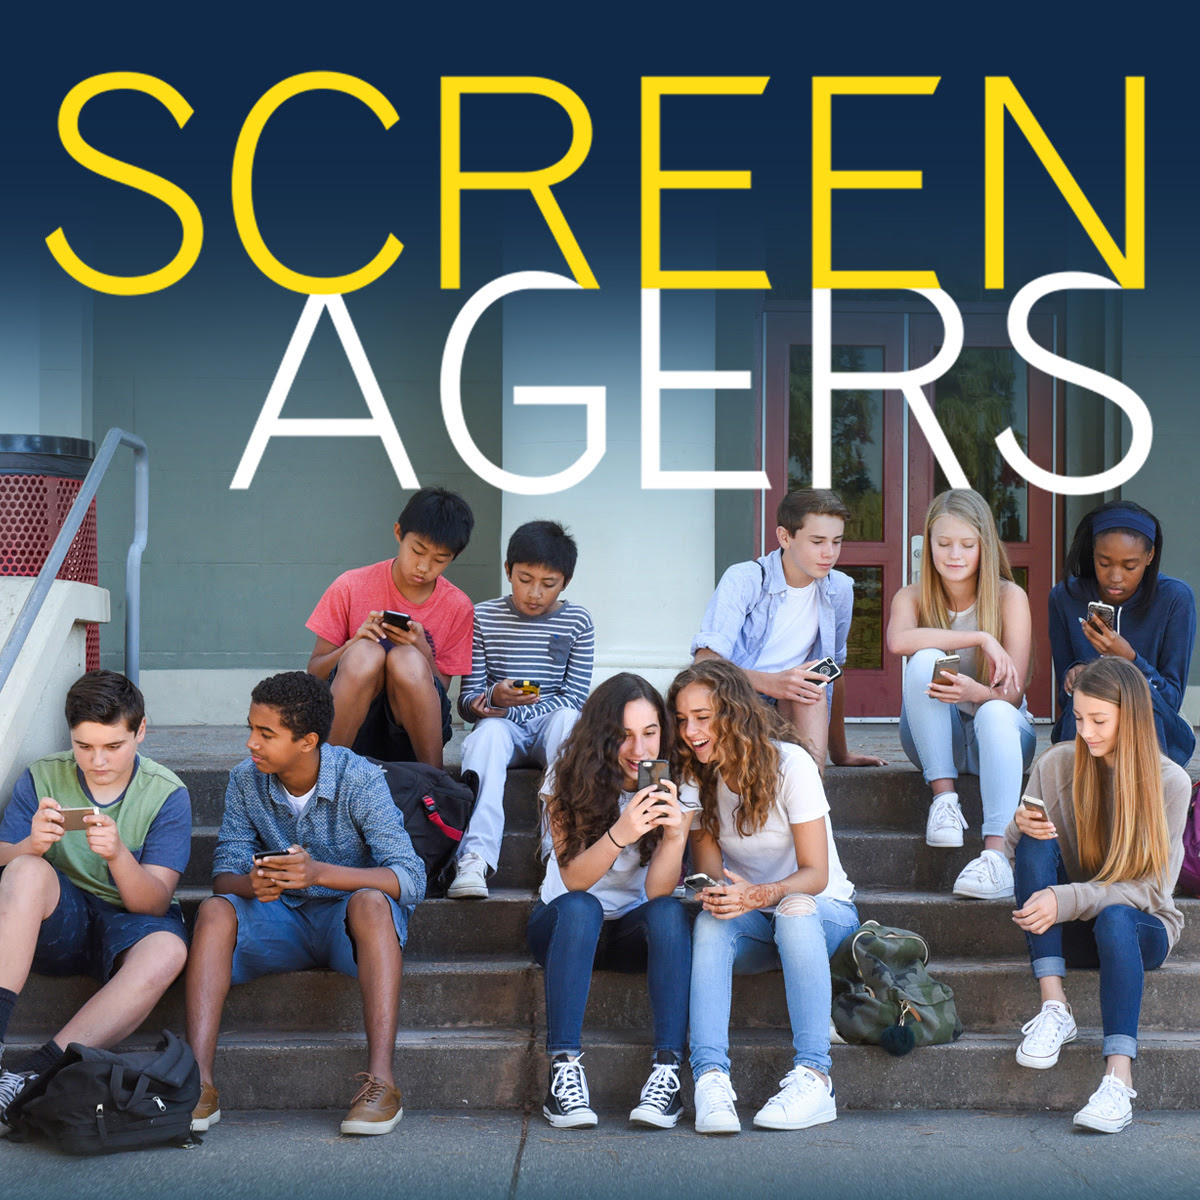 Screenagers Film Presented By First Presbyterian Church of San Leandro